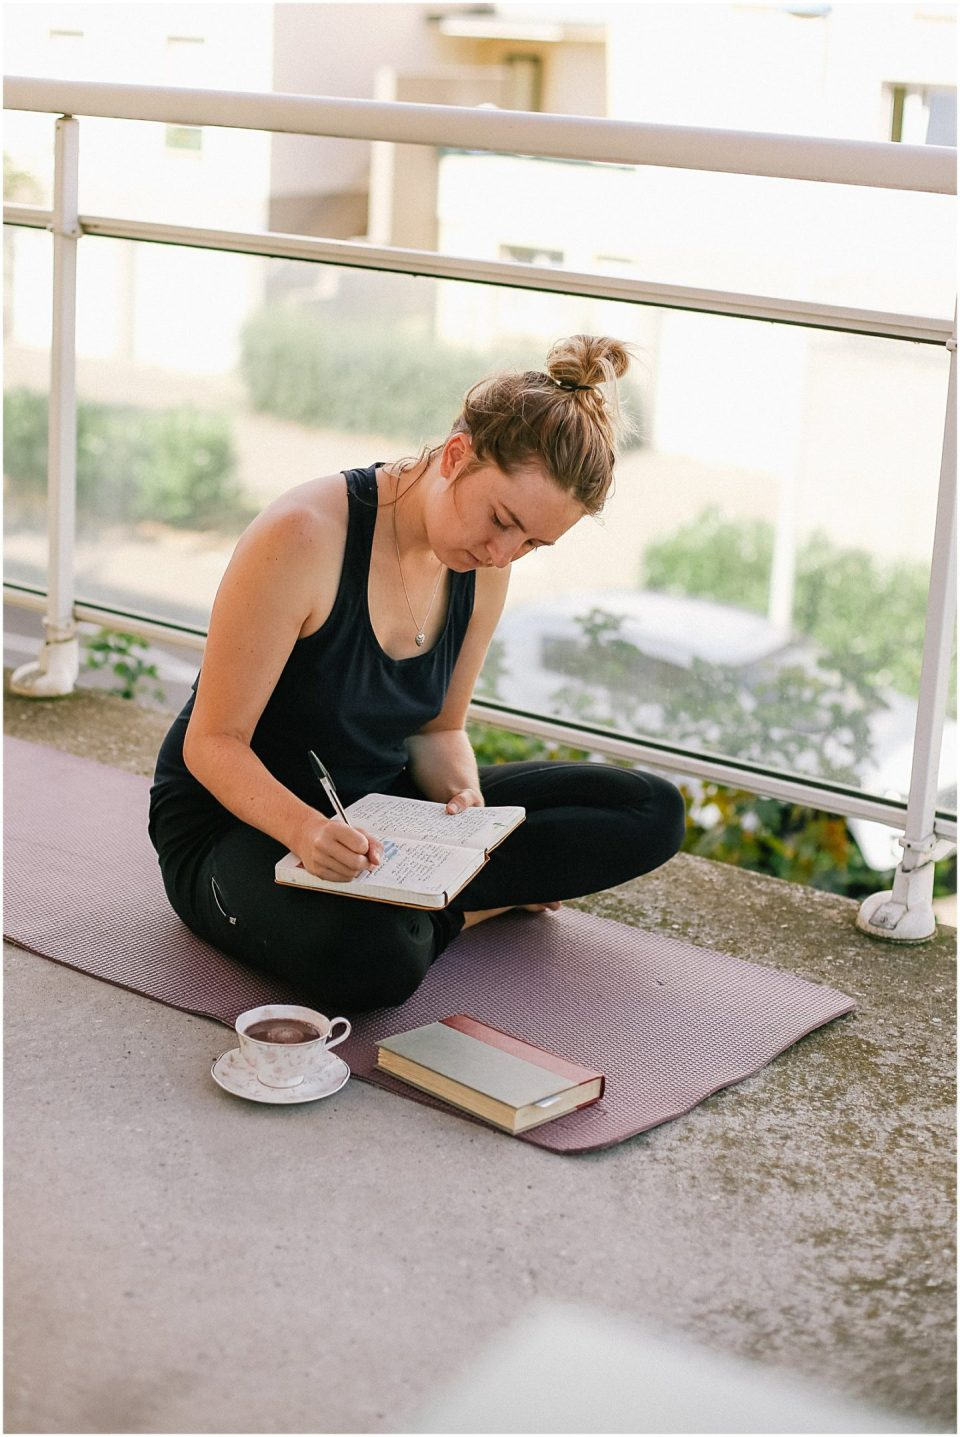 gratitude journaling on a yoga mat with a peaceful morning routine Helena Woods